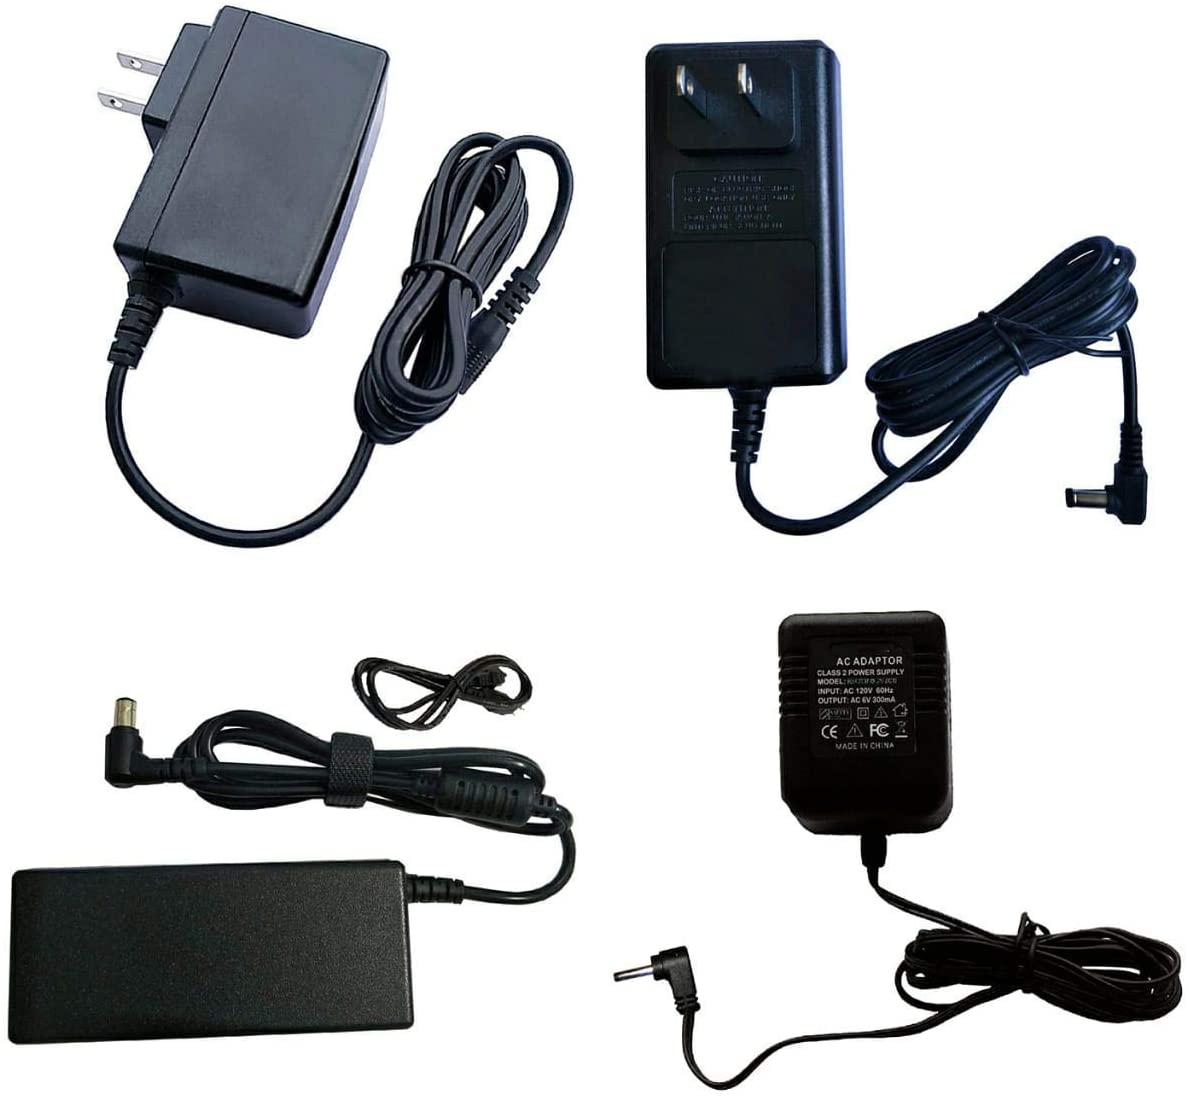 UPBRIGHT New Car DC Adapter for Acer Aspire Switch 10 SW5-012-19RC NT.L4TAA.014 SW5-012-10JS NT.L4TAA.001 Tablet PC Auto Vehicle Boat RV Cigarette Lighter Plug Power Supply Cord Charger Cable PSU